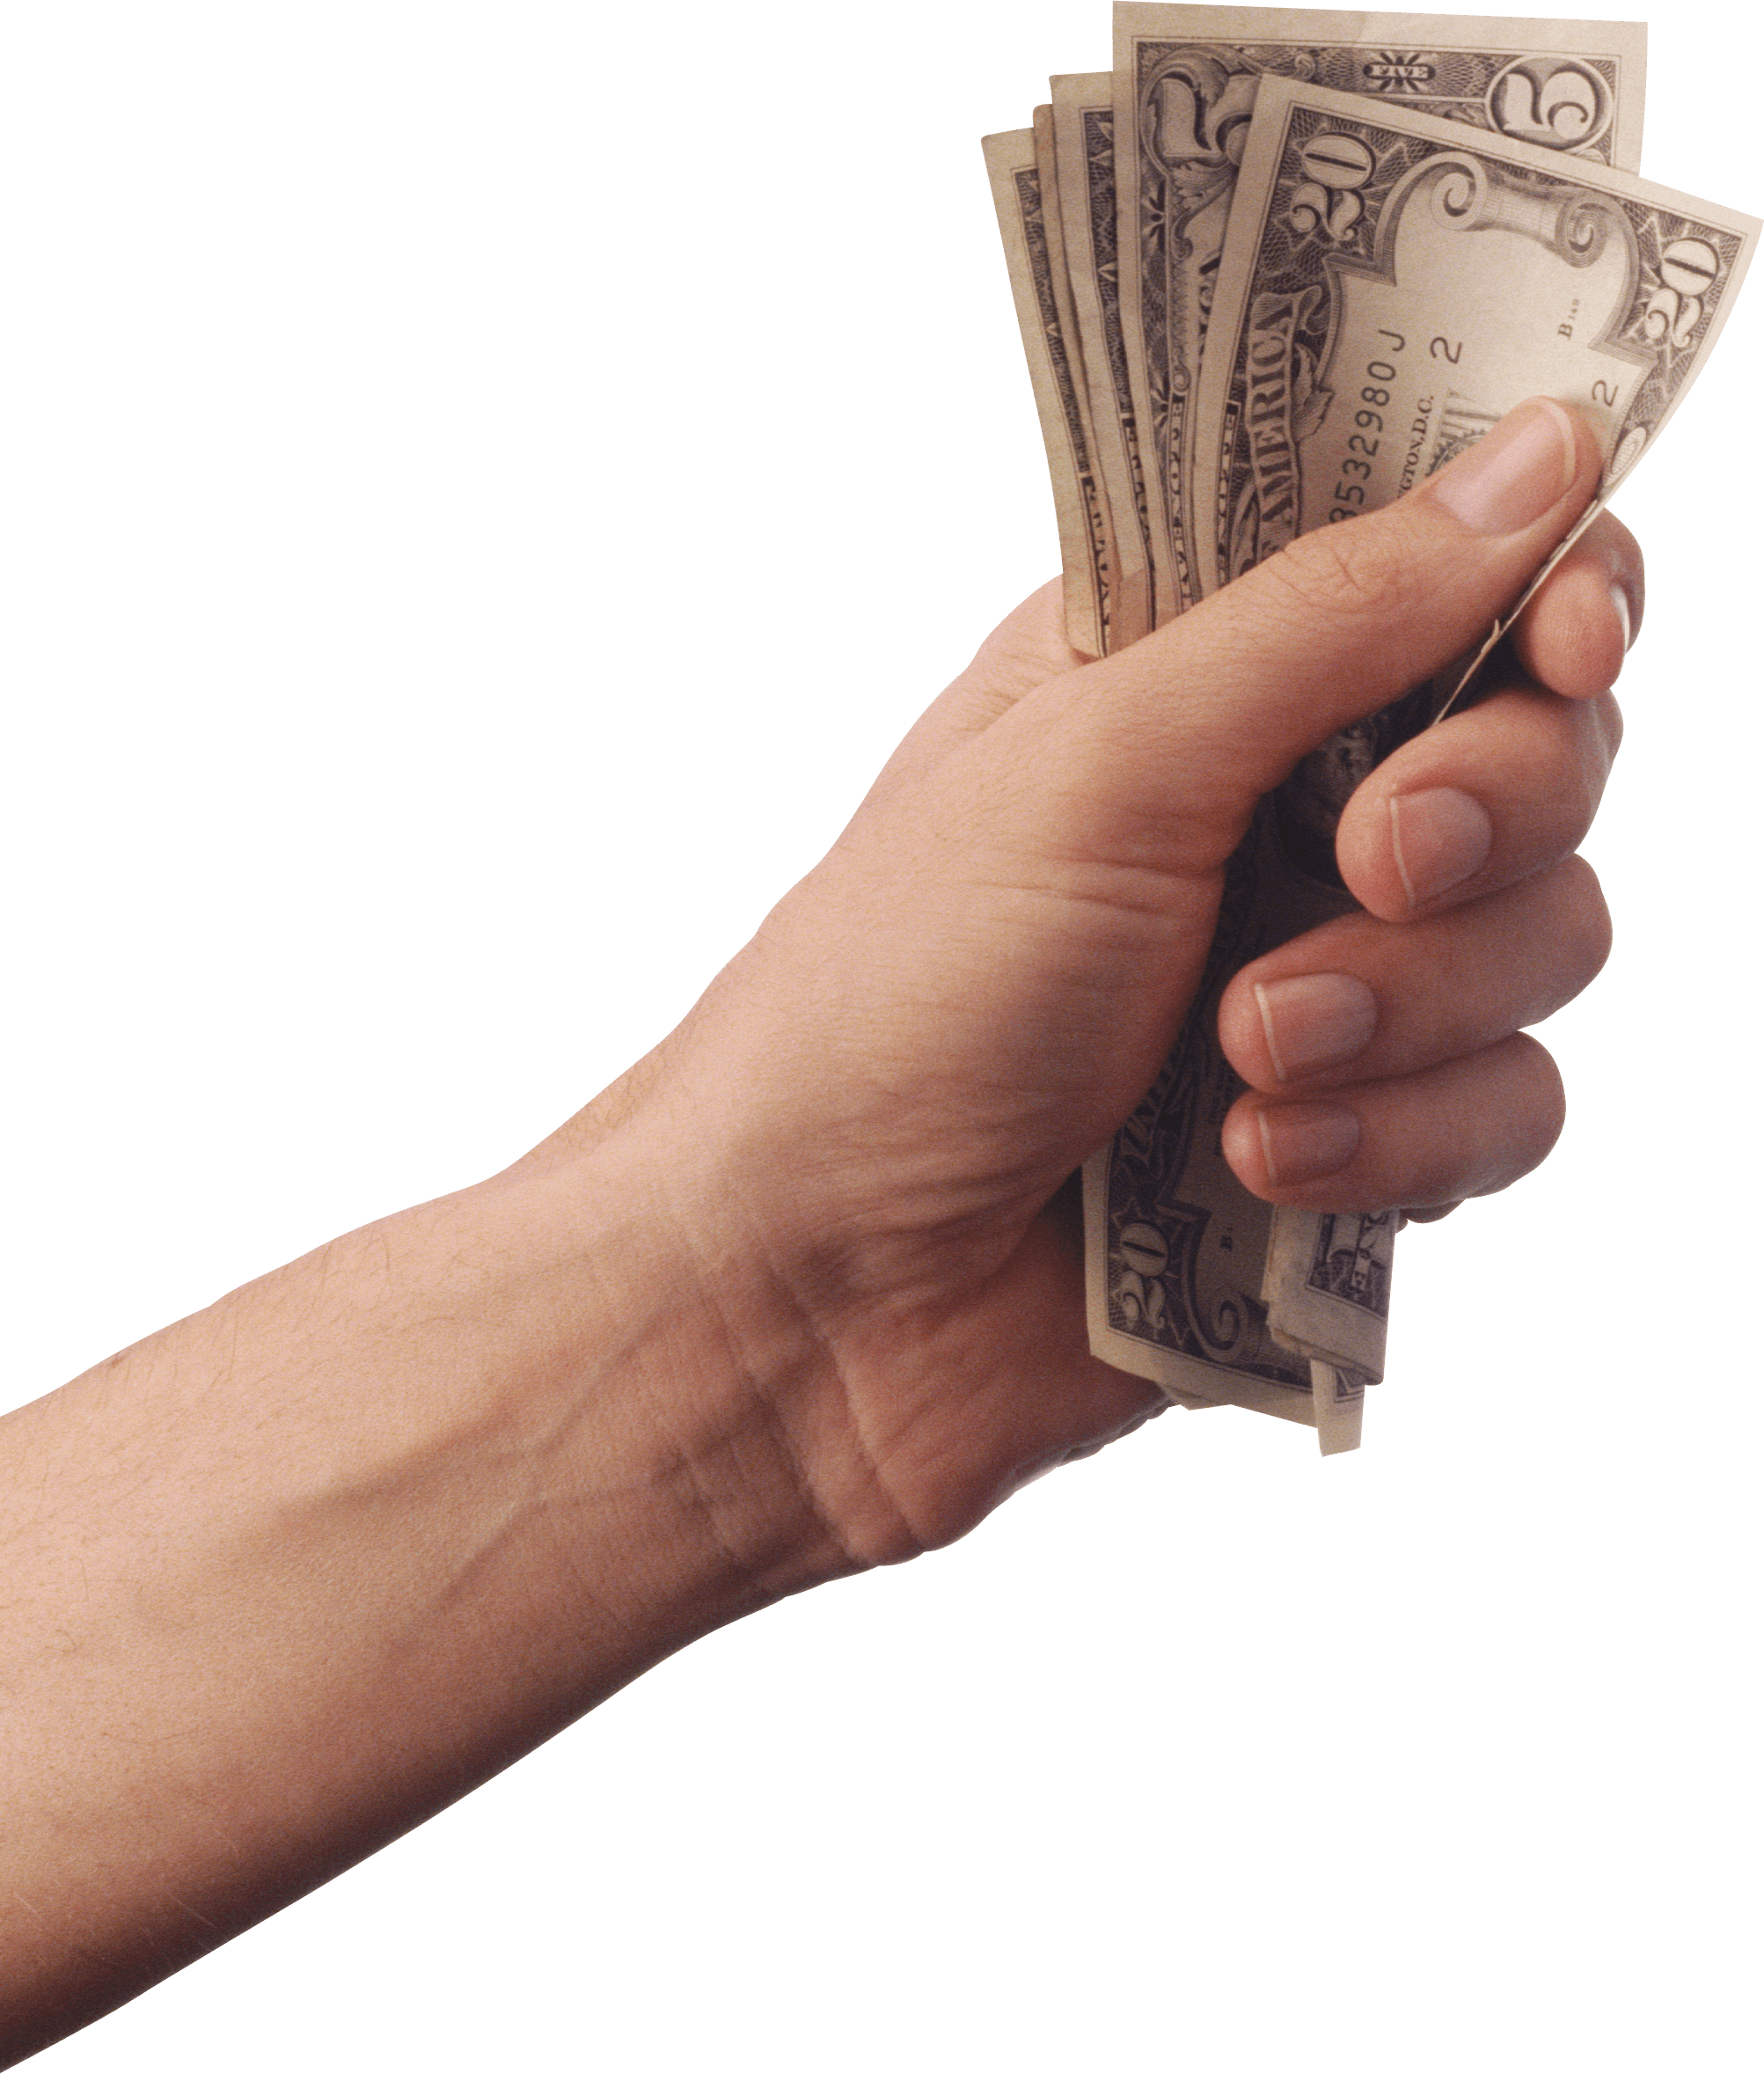 cash holding ★   loan today🔥   ☑ you came to the right place, speedy cash holdings corp, ☑ you can get a cash loan as soon as 1 hour »» approved today (speedy cash holdings corp).